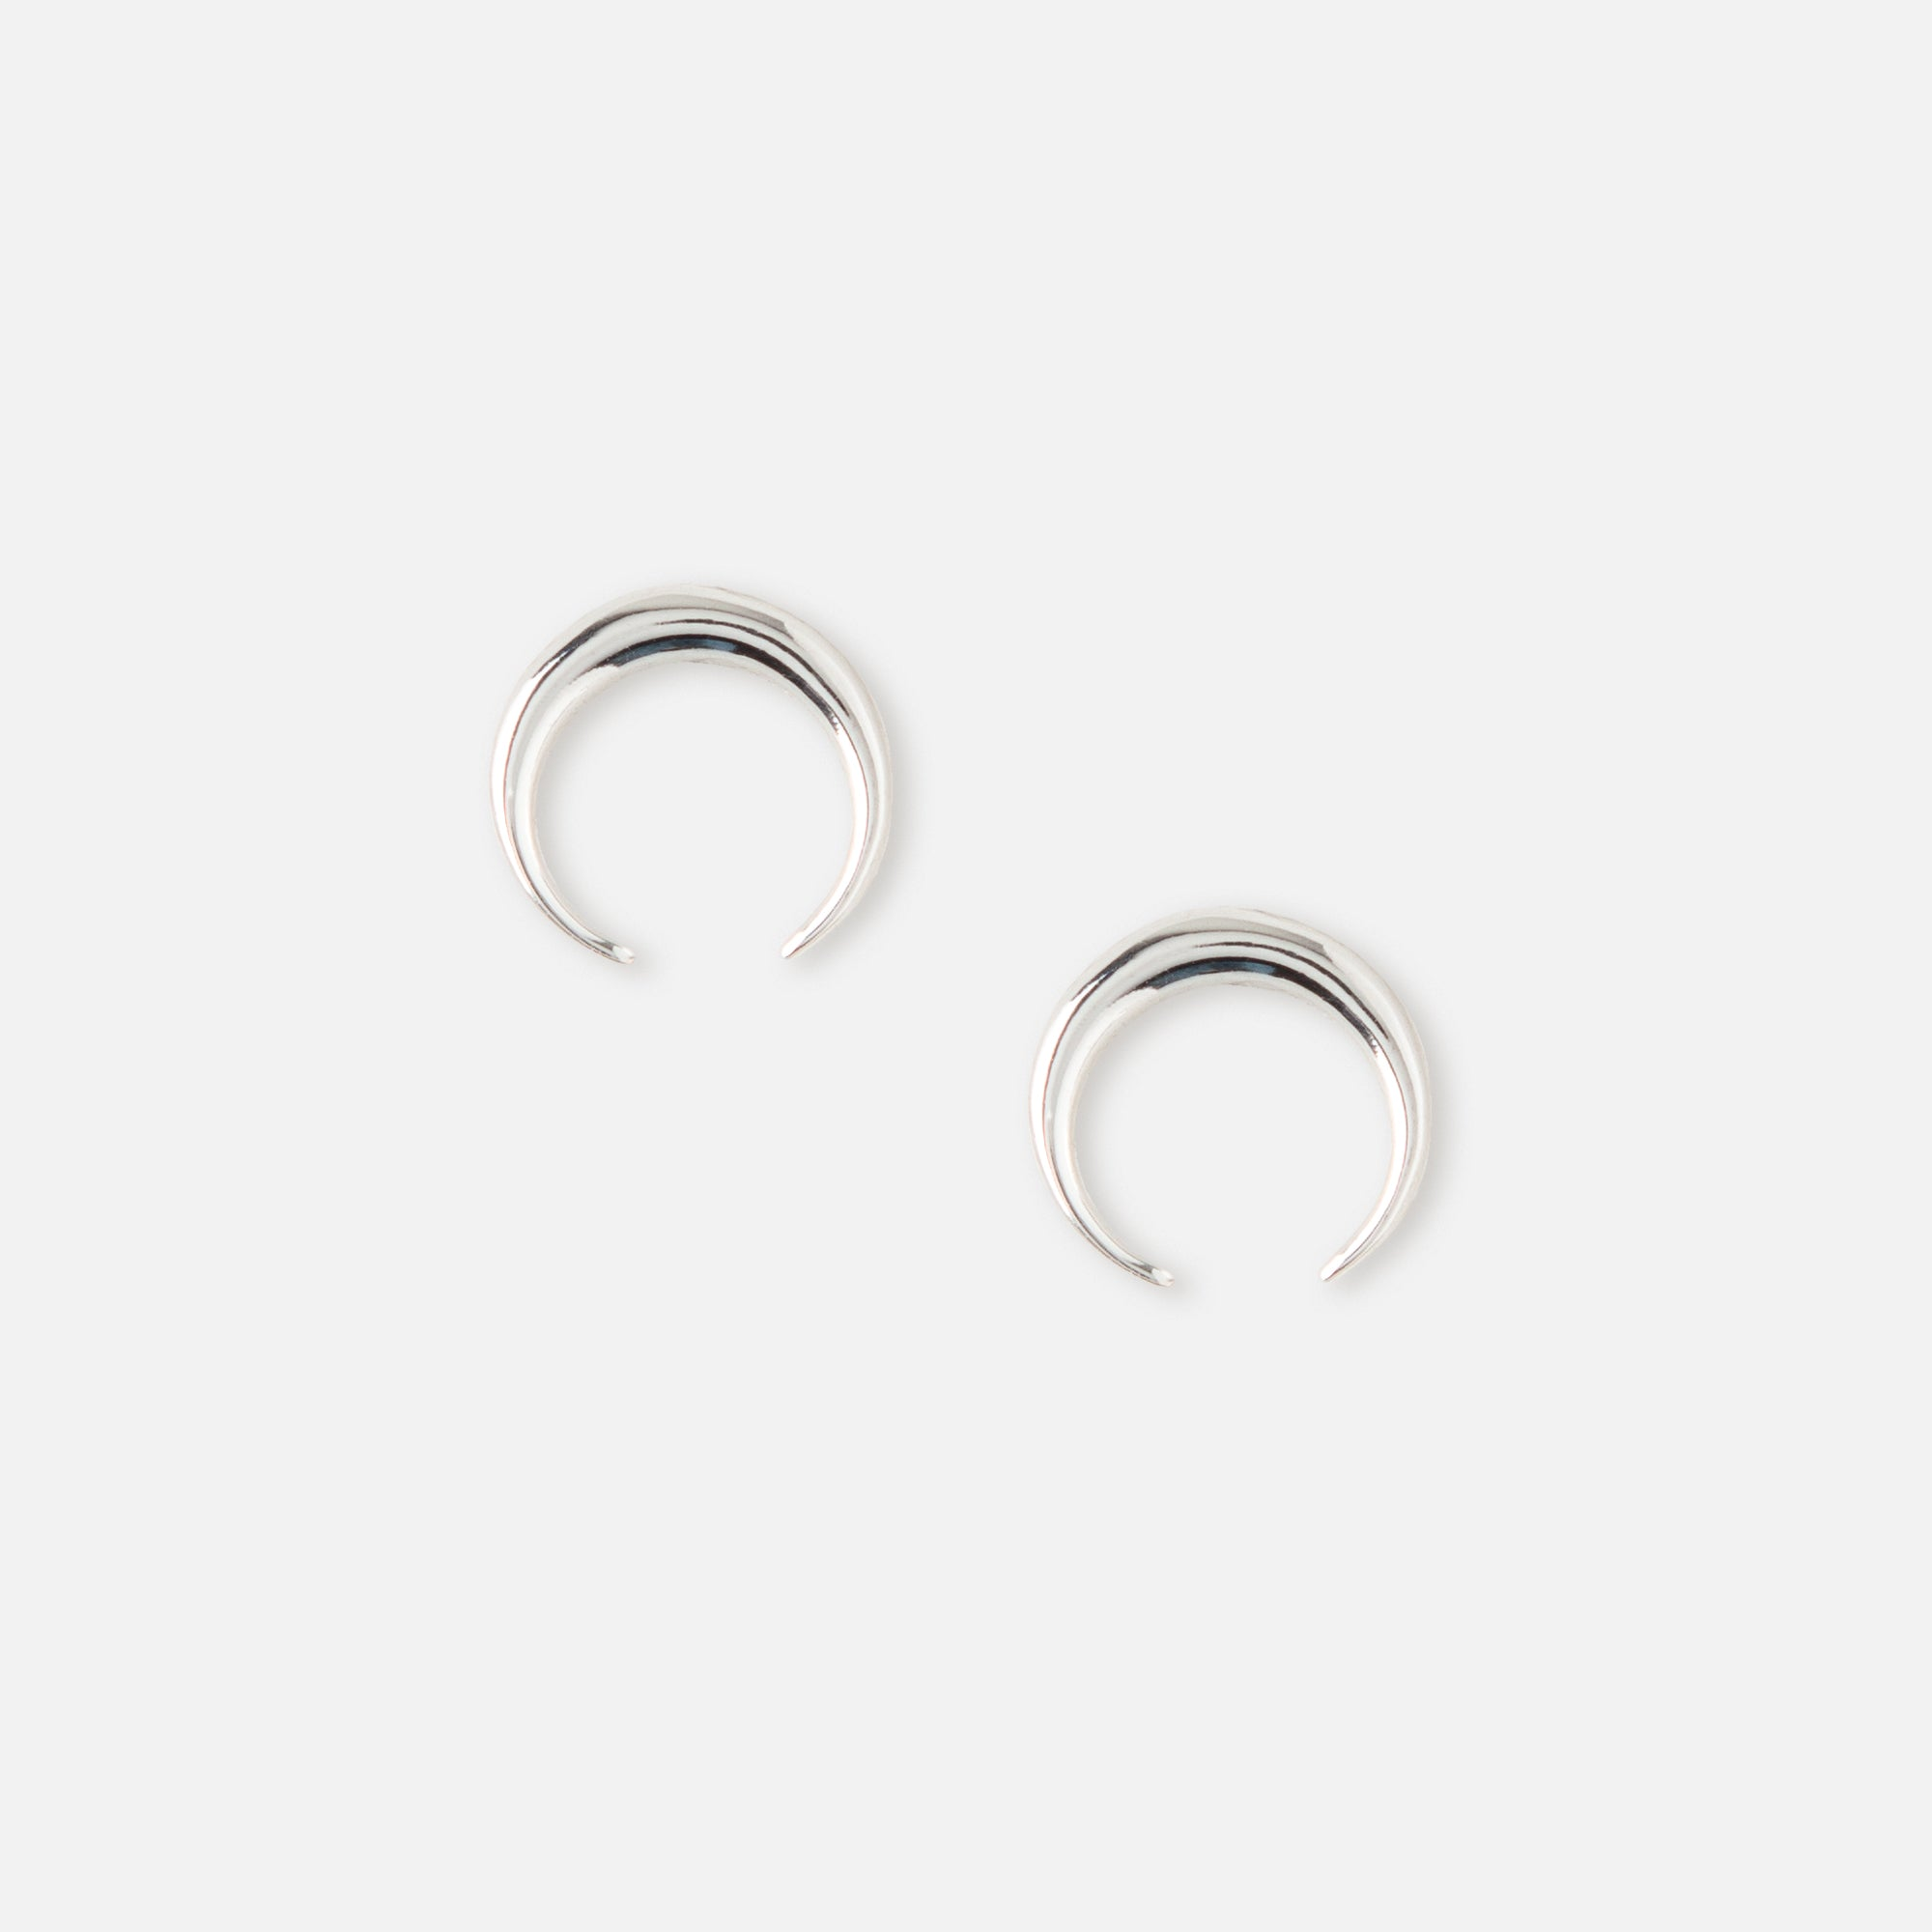 LUXE Mini Crescent Stud Earrings - Silver